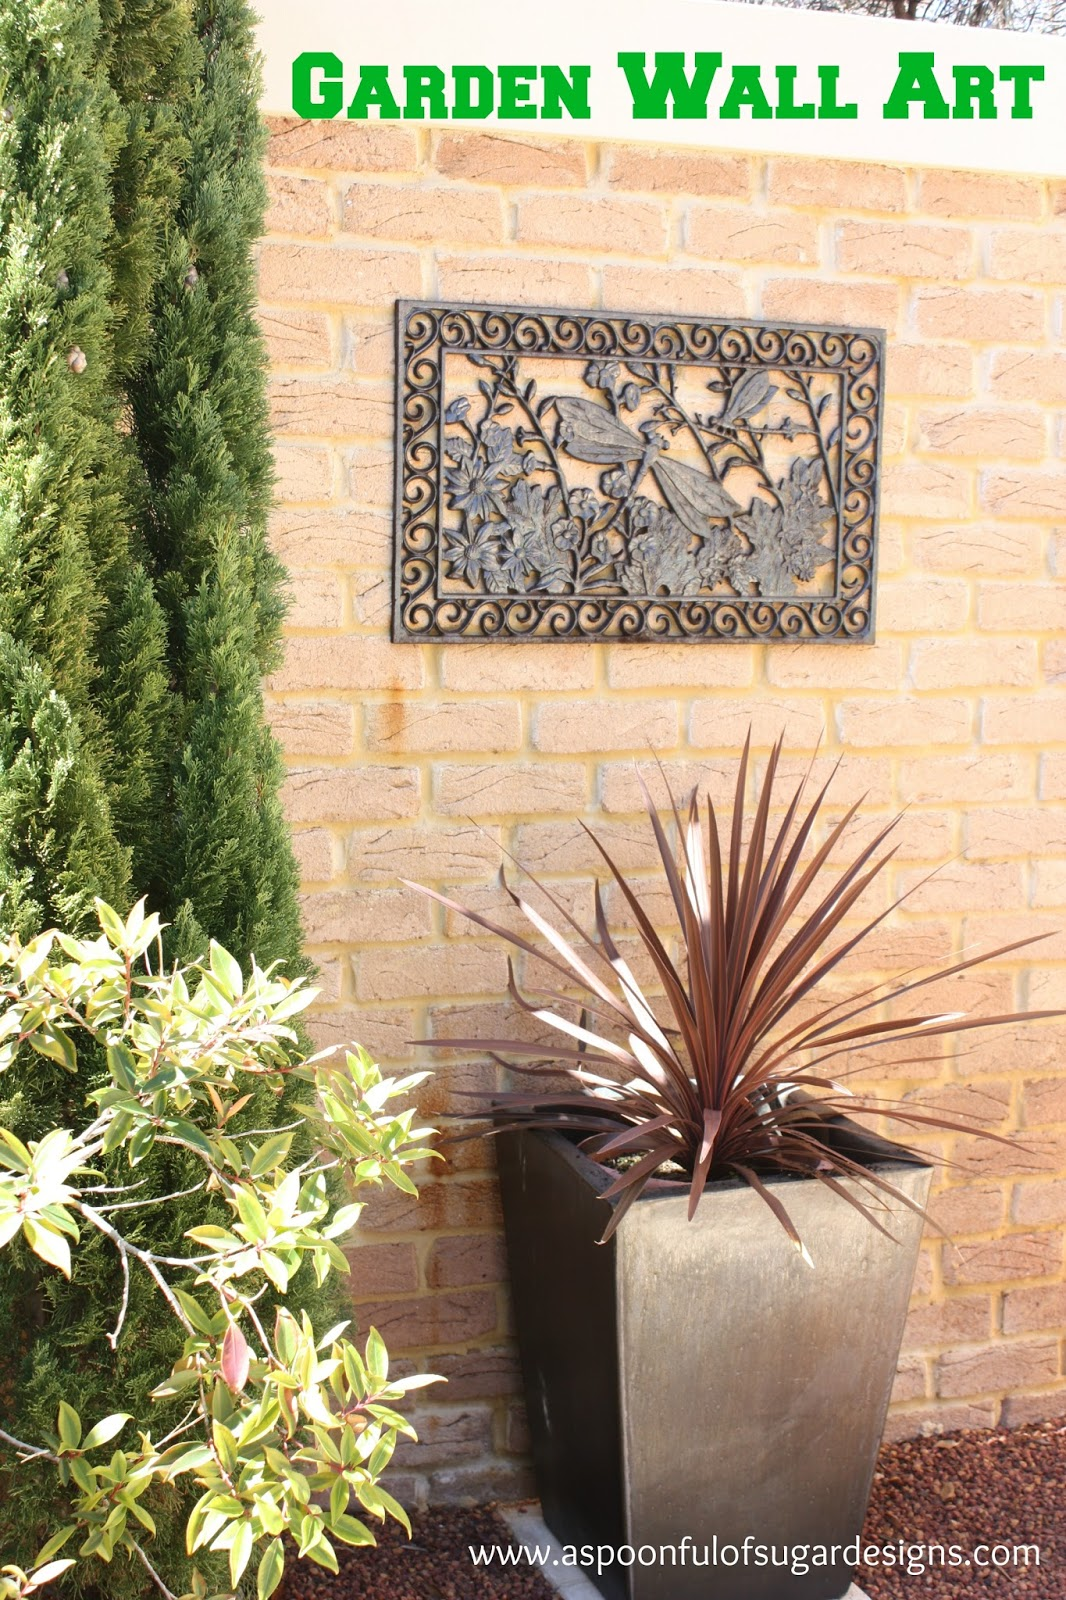 If You Are Wanting A Quick Project To Jazz Up Your Outdoor Space For  Spring, This Quick Garden Wall Art Makes A Big Impact. You Simply Paint A  Cast Iron ...